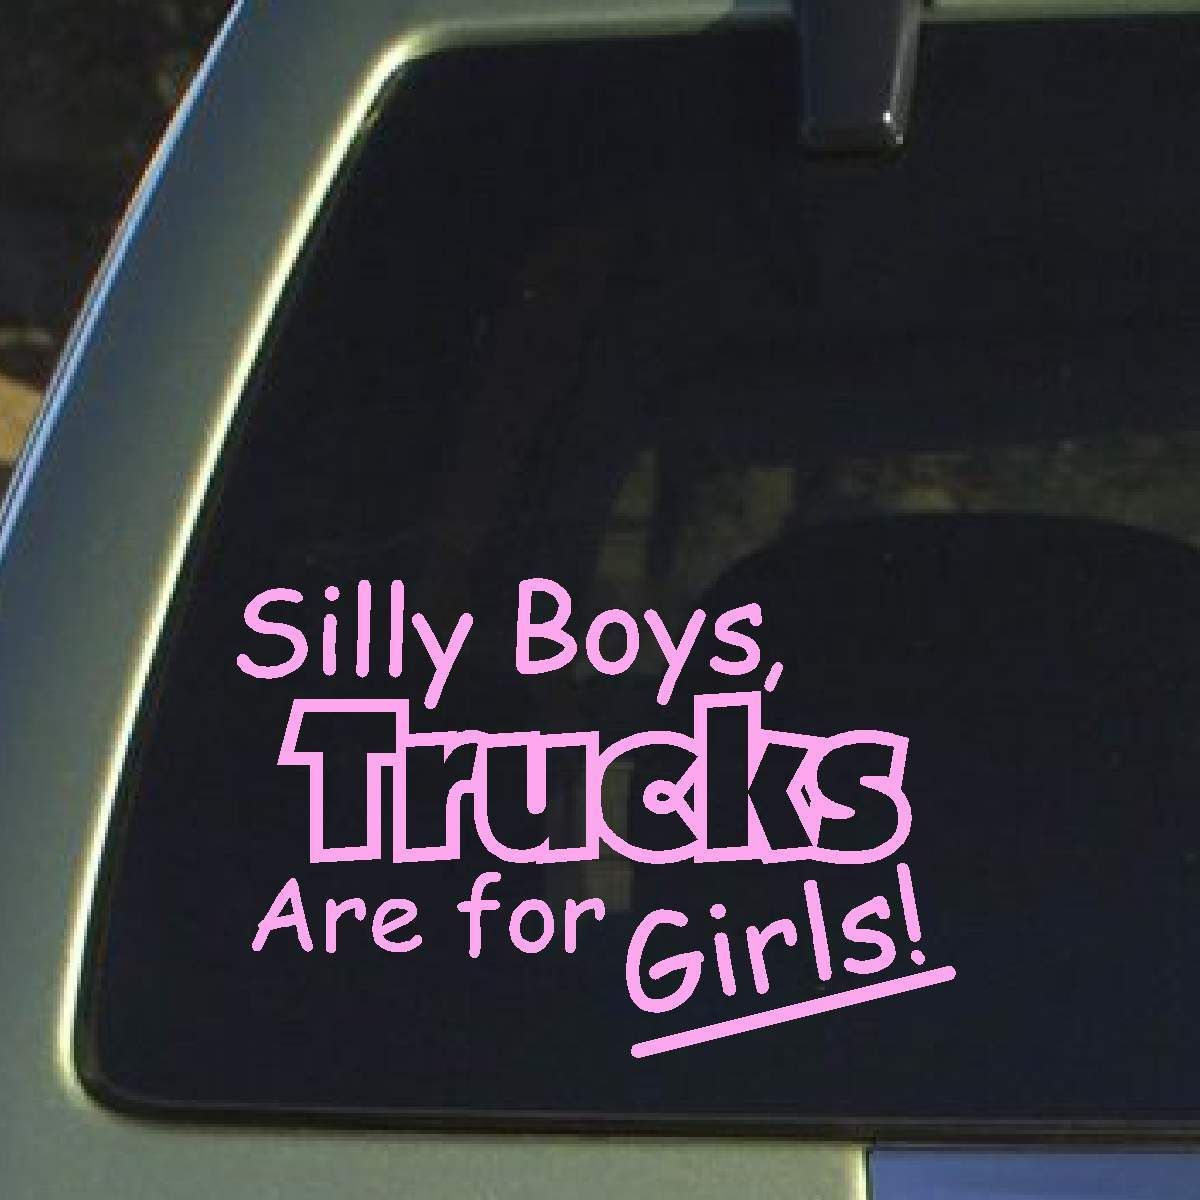 Decals By Us Silly Boys Truck Are For Girls Decal 7 25 Http